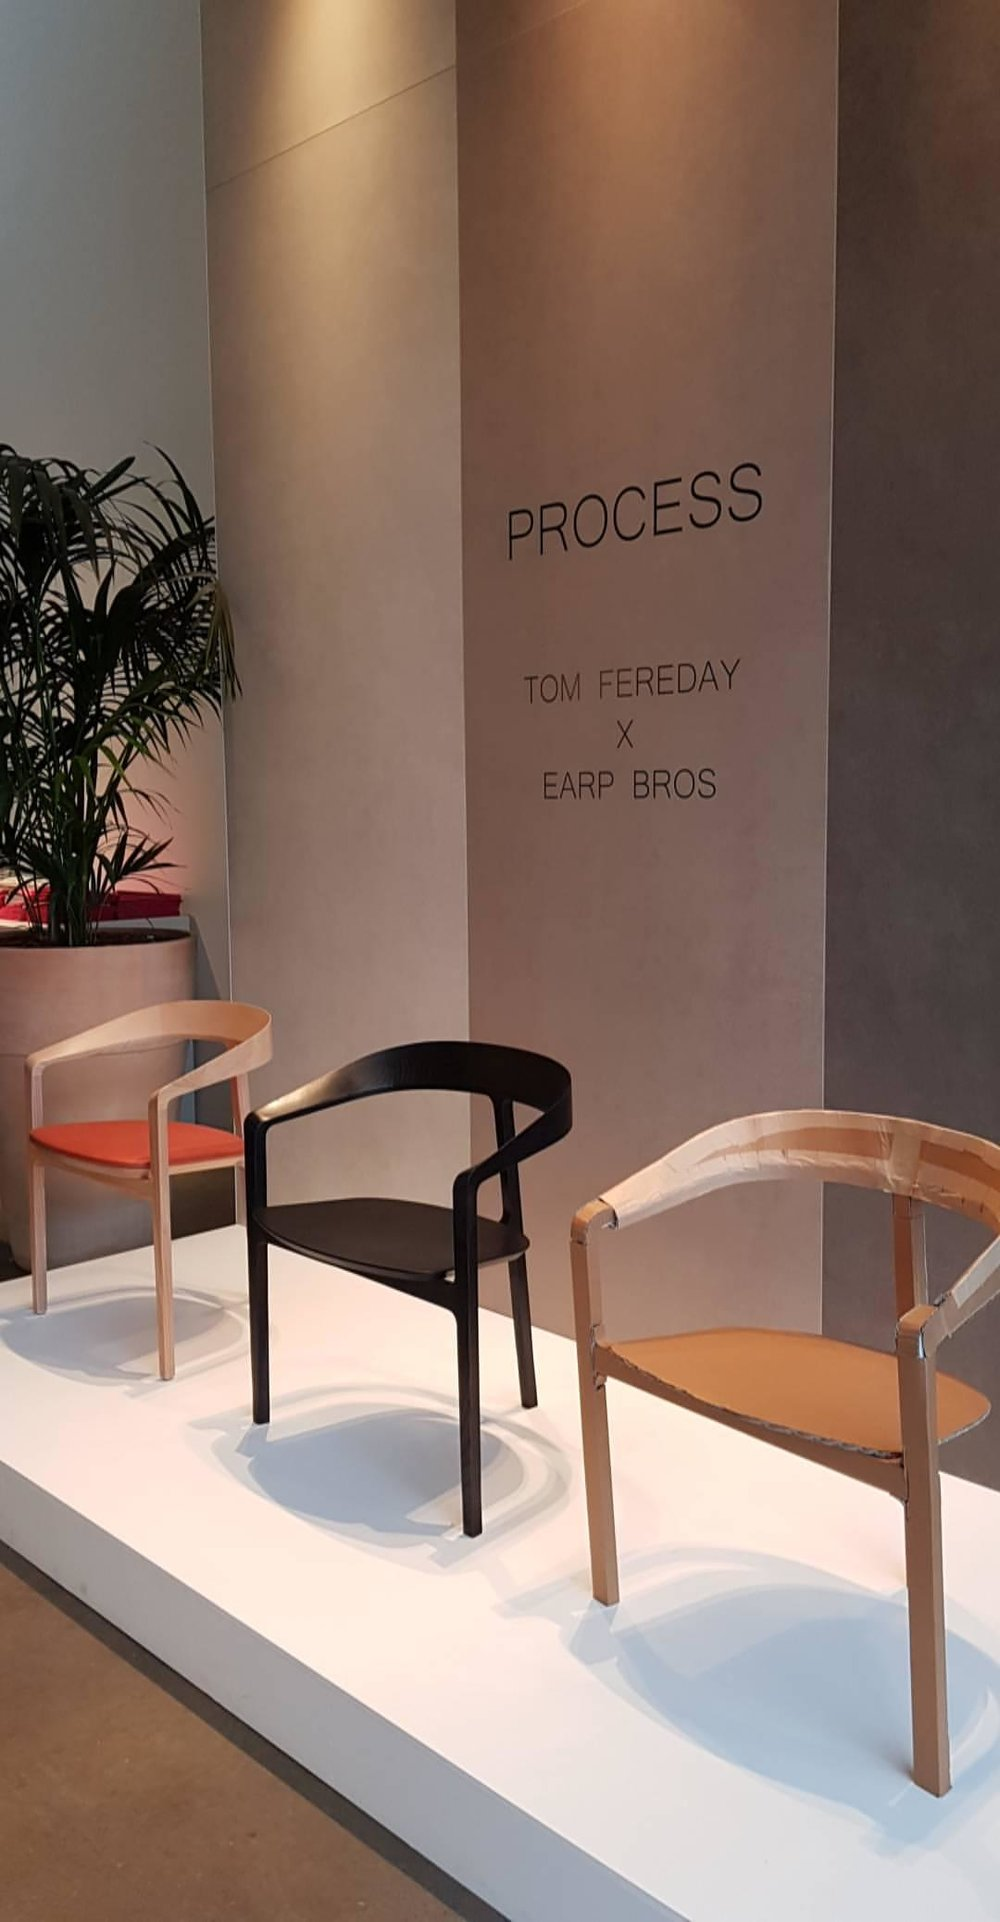 The Earp Bros showroom was a favourite for all of us this year. This display by Tom Fereday beautifully captured the latest furniture and lighting designs. Showcased alongside prototypes and models, the display told the story of each of the designs, highlighting the creative process and the evolution of each piece.